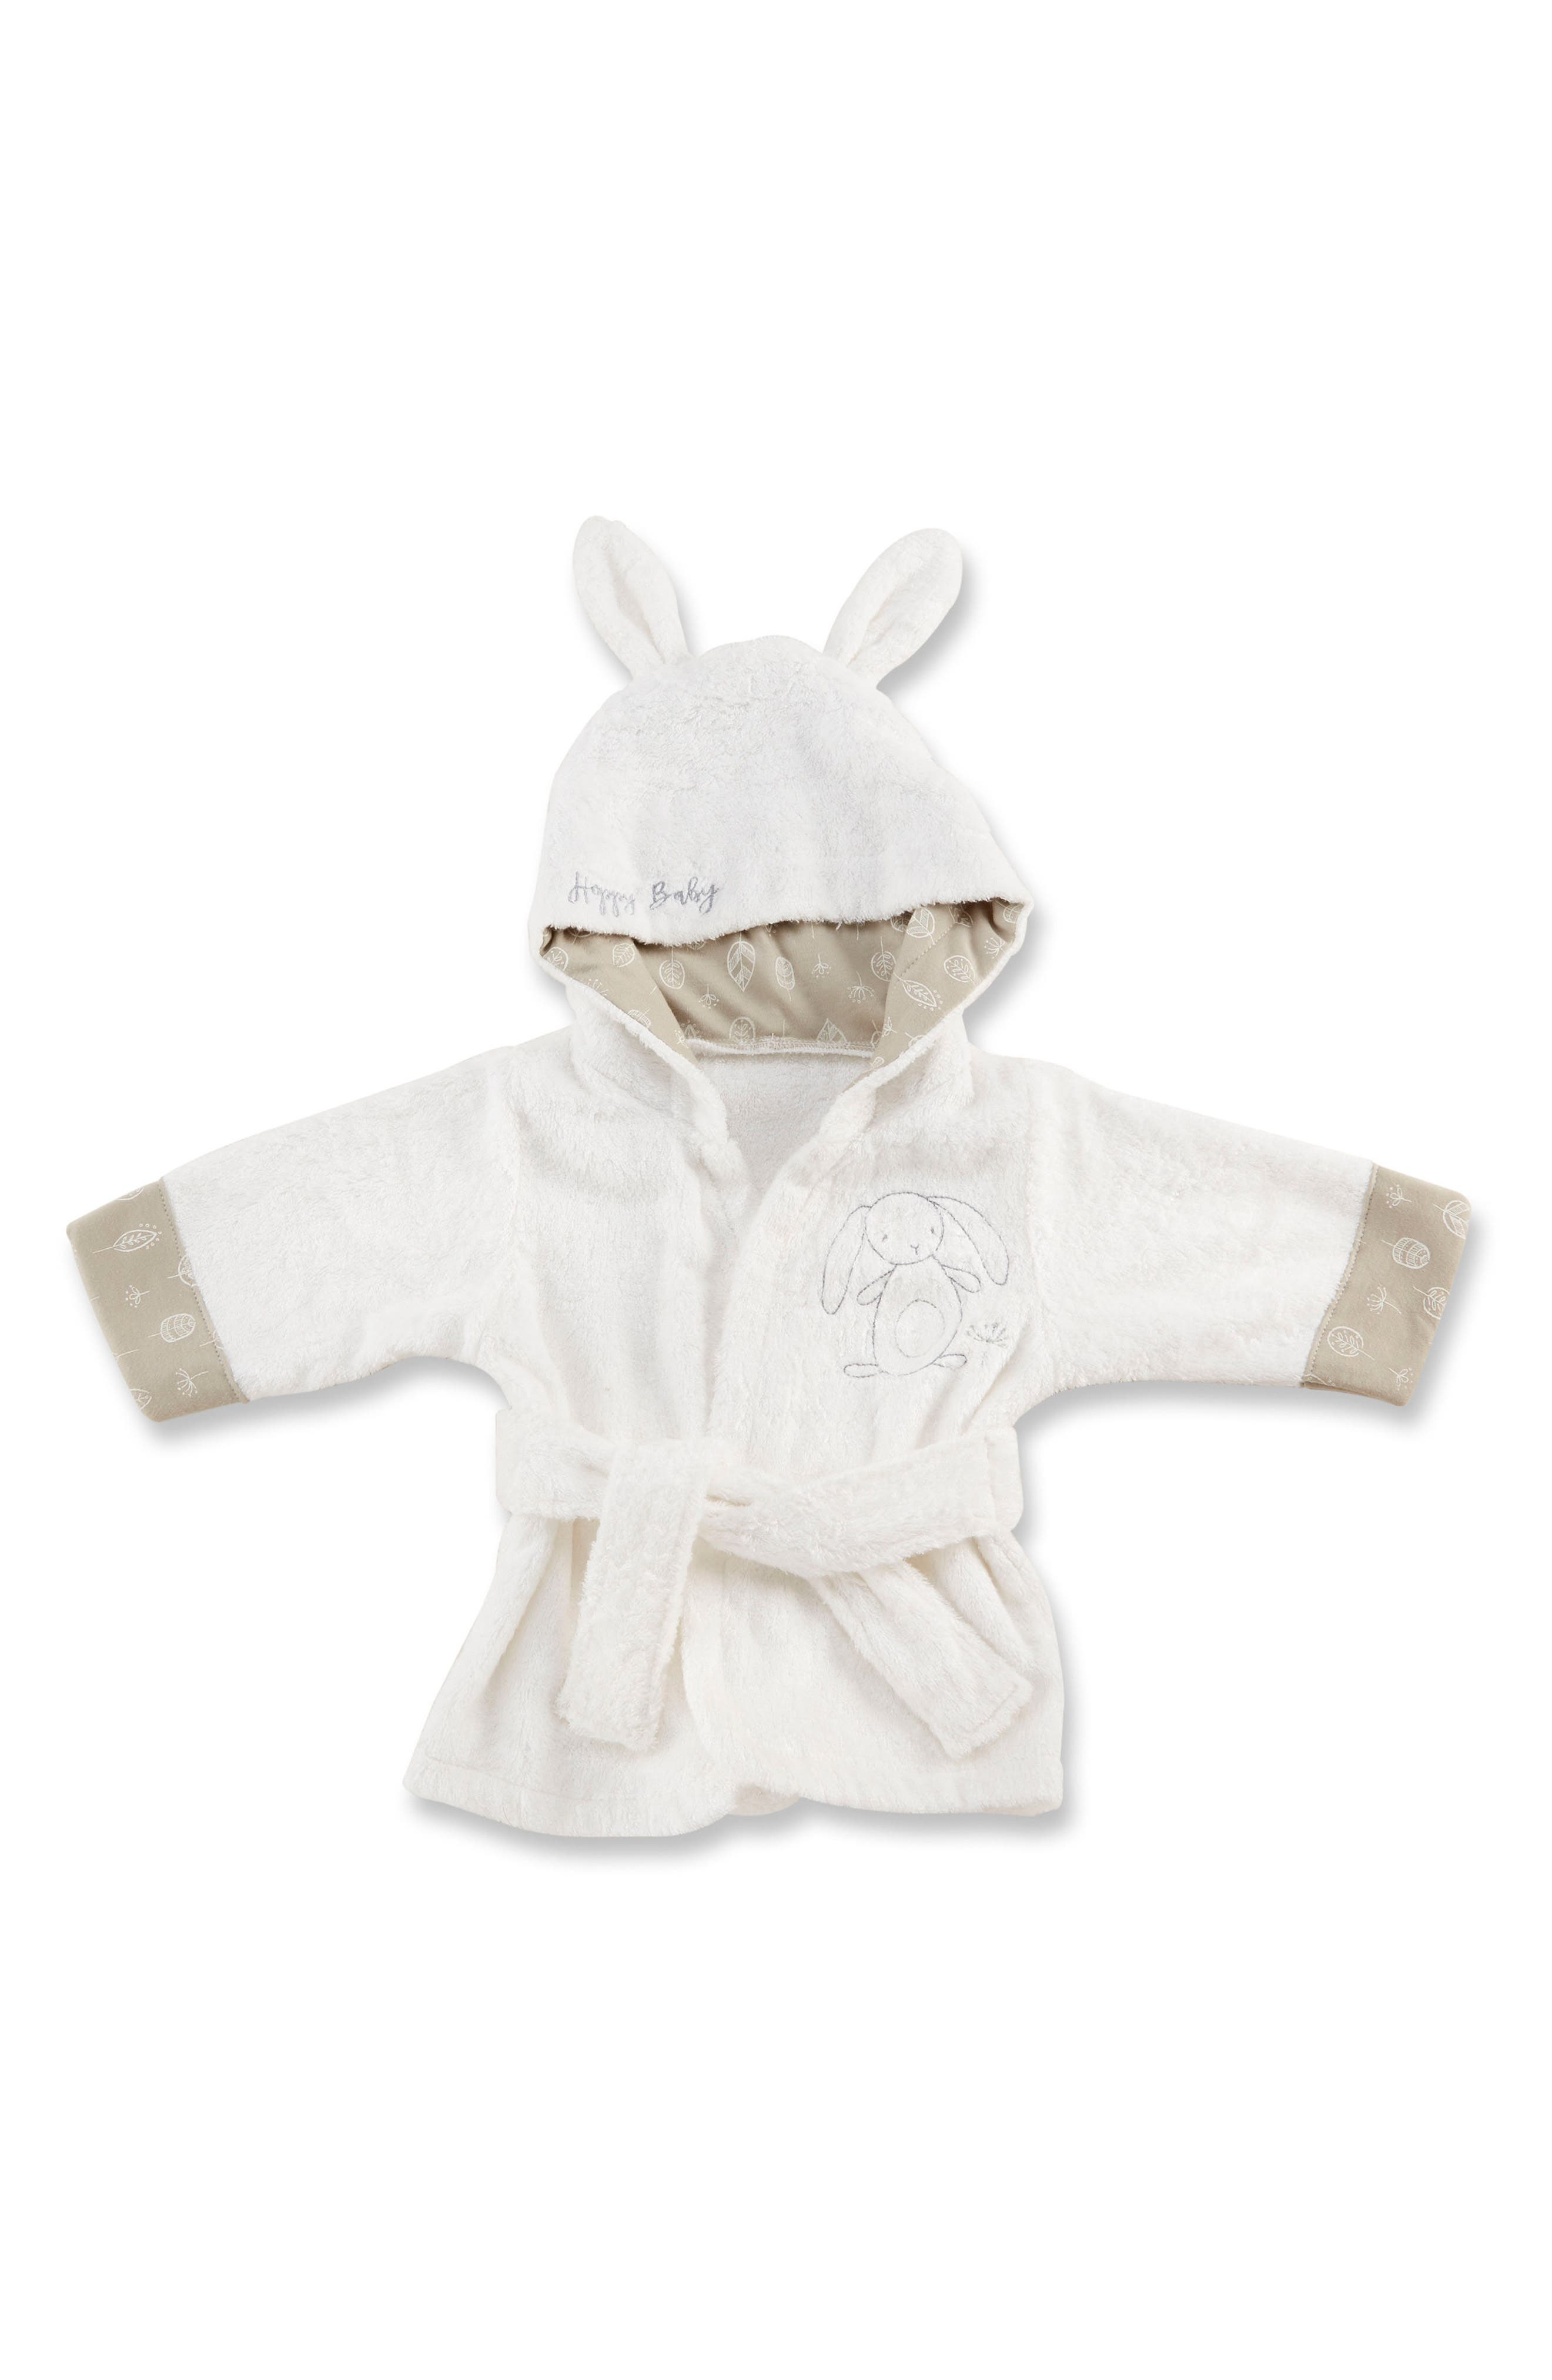 Nature Baby Bunny Bathrobe,                         Main,                         color, White, Beige And Grey